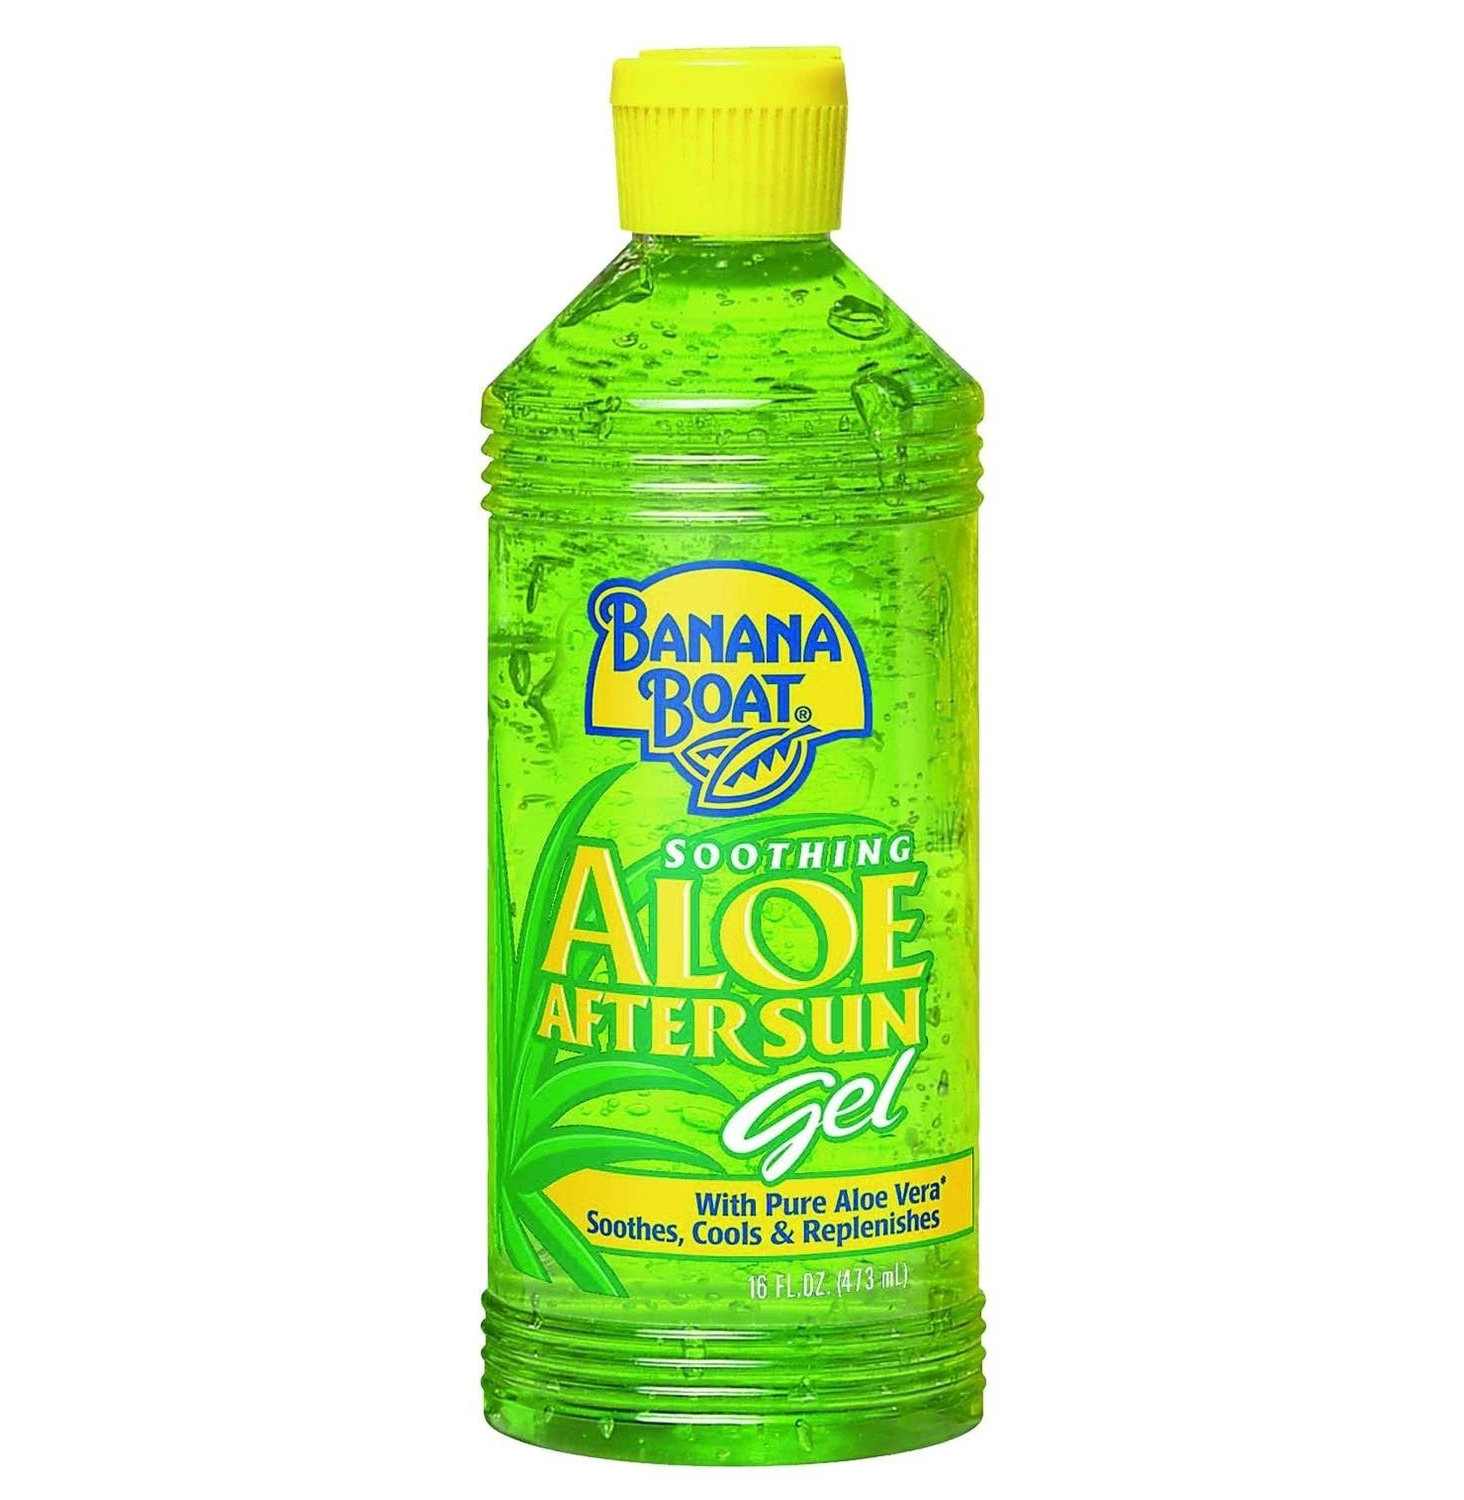 Banana Boat Soothing Aloe After Sun Gel 480mL